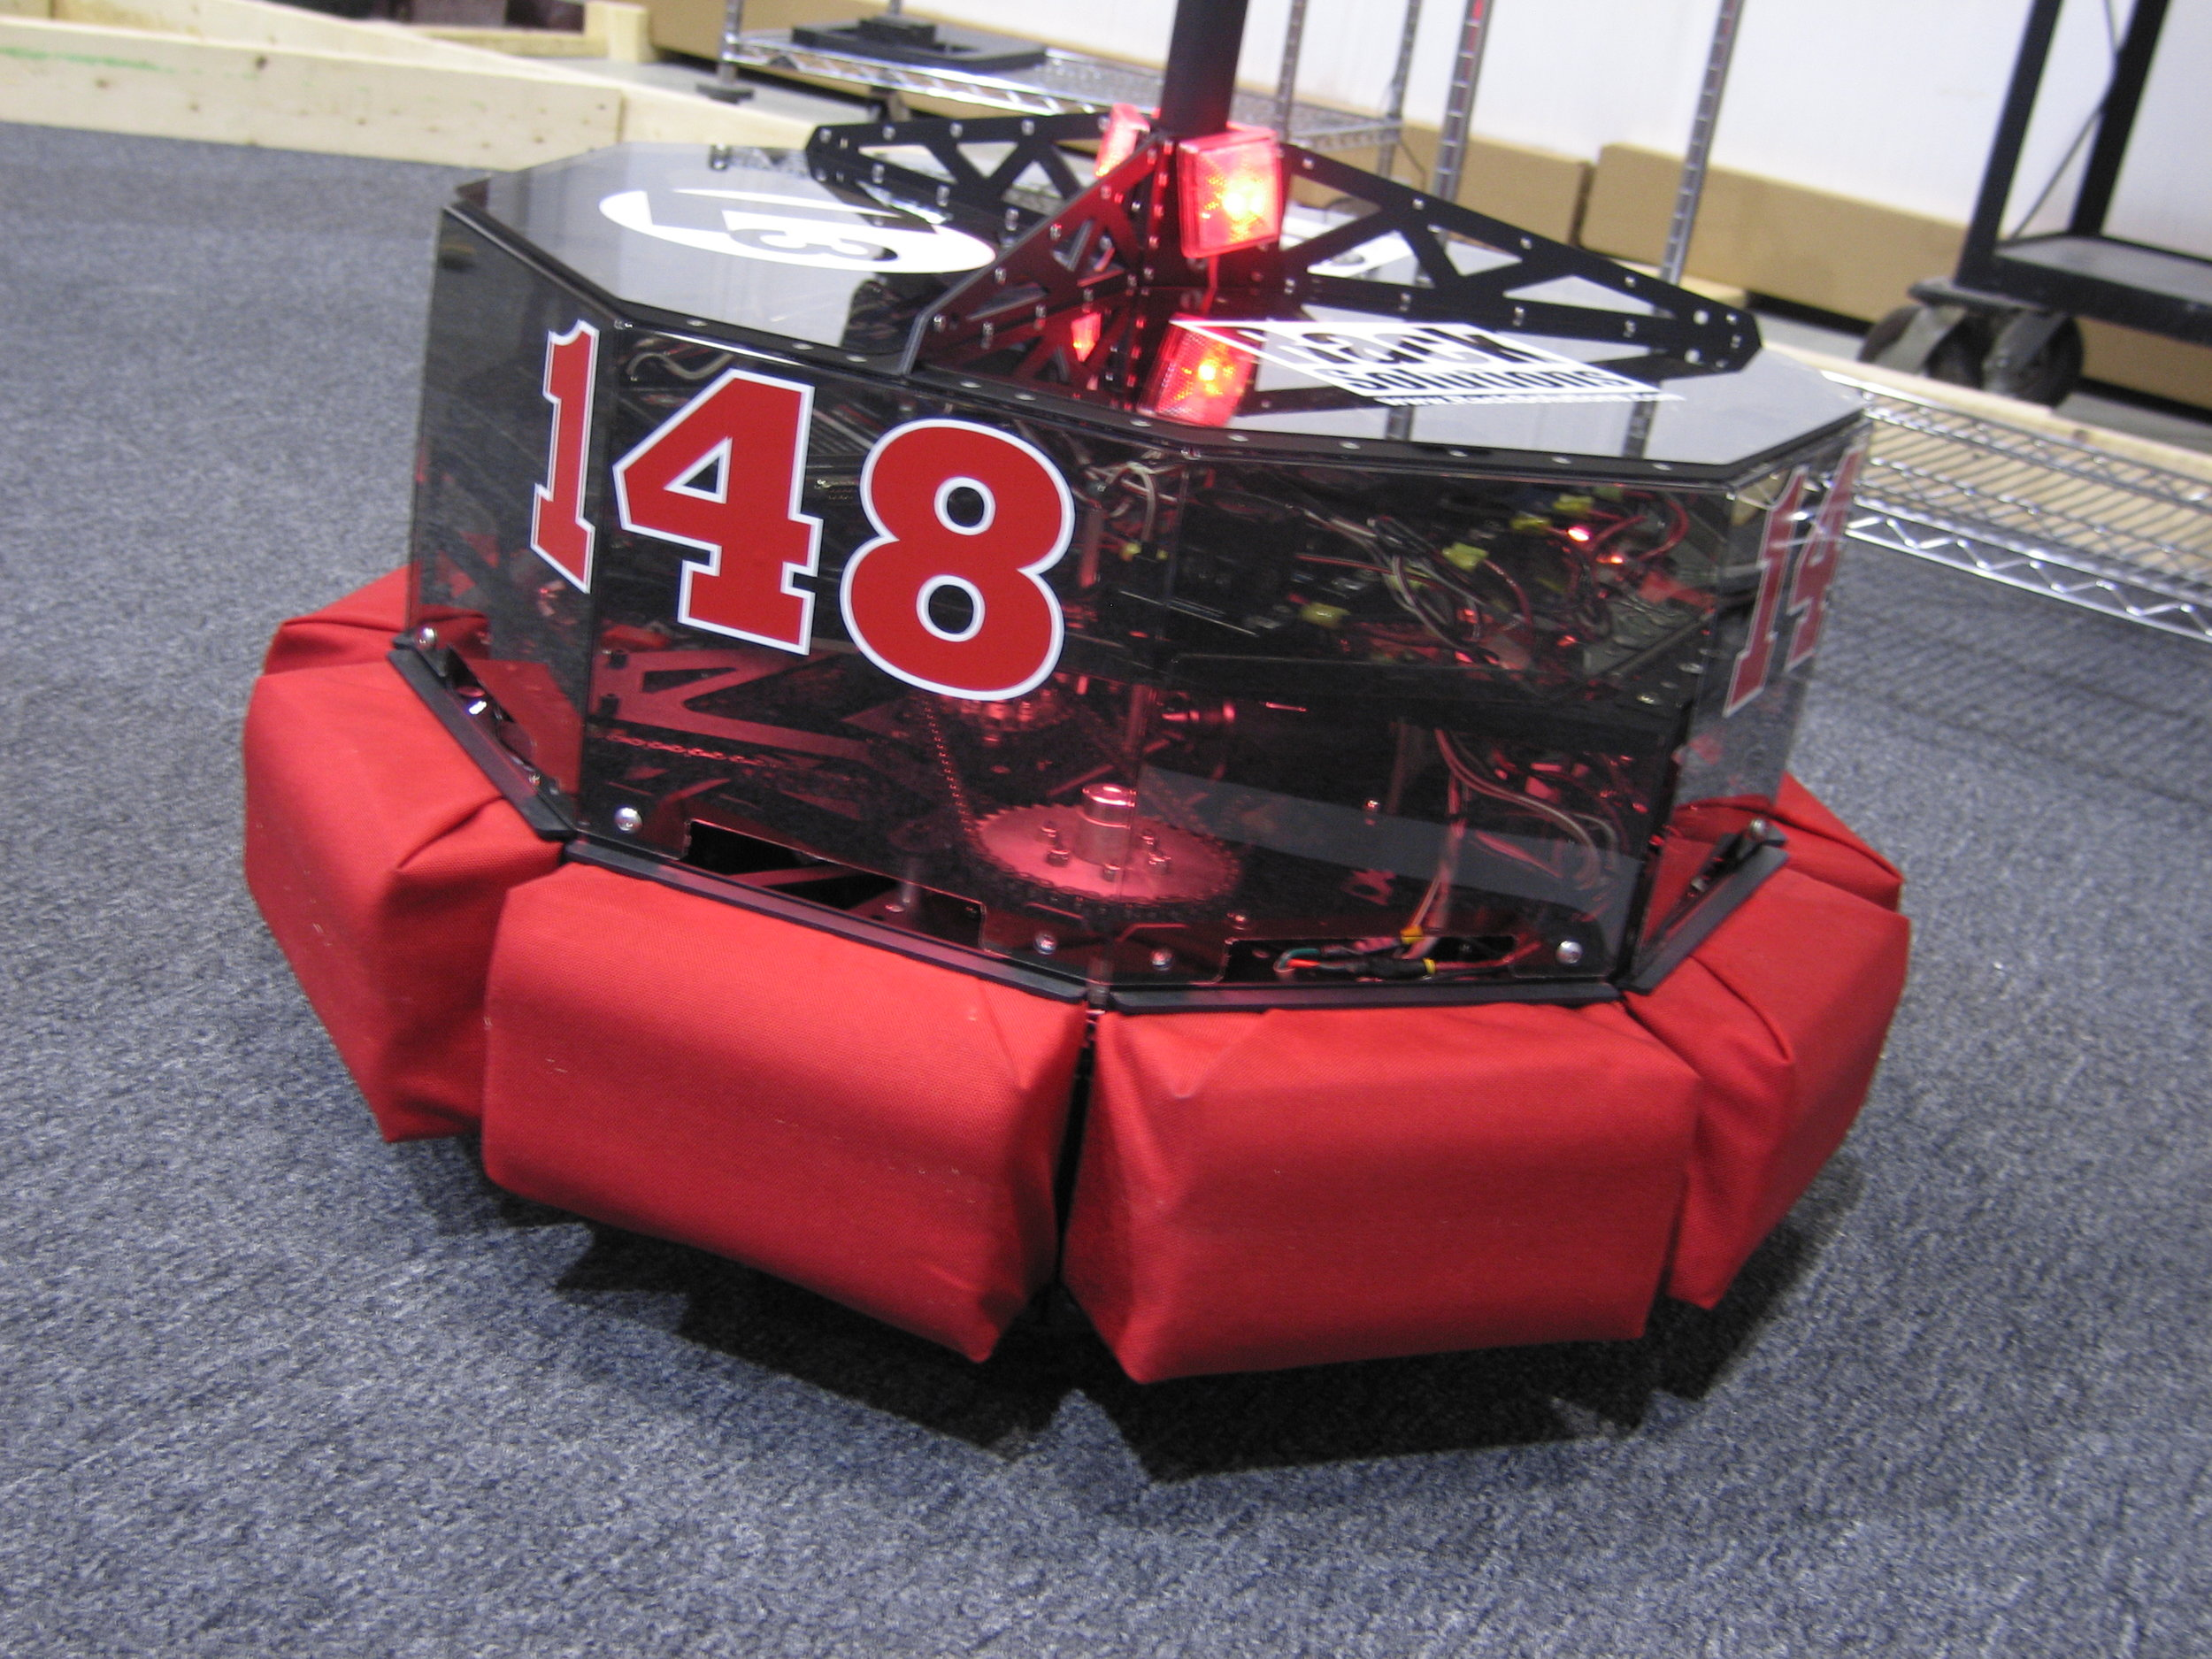 This little lap robot is a 2008 World Champion.  Though, it did not succeed at #1 or #2.